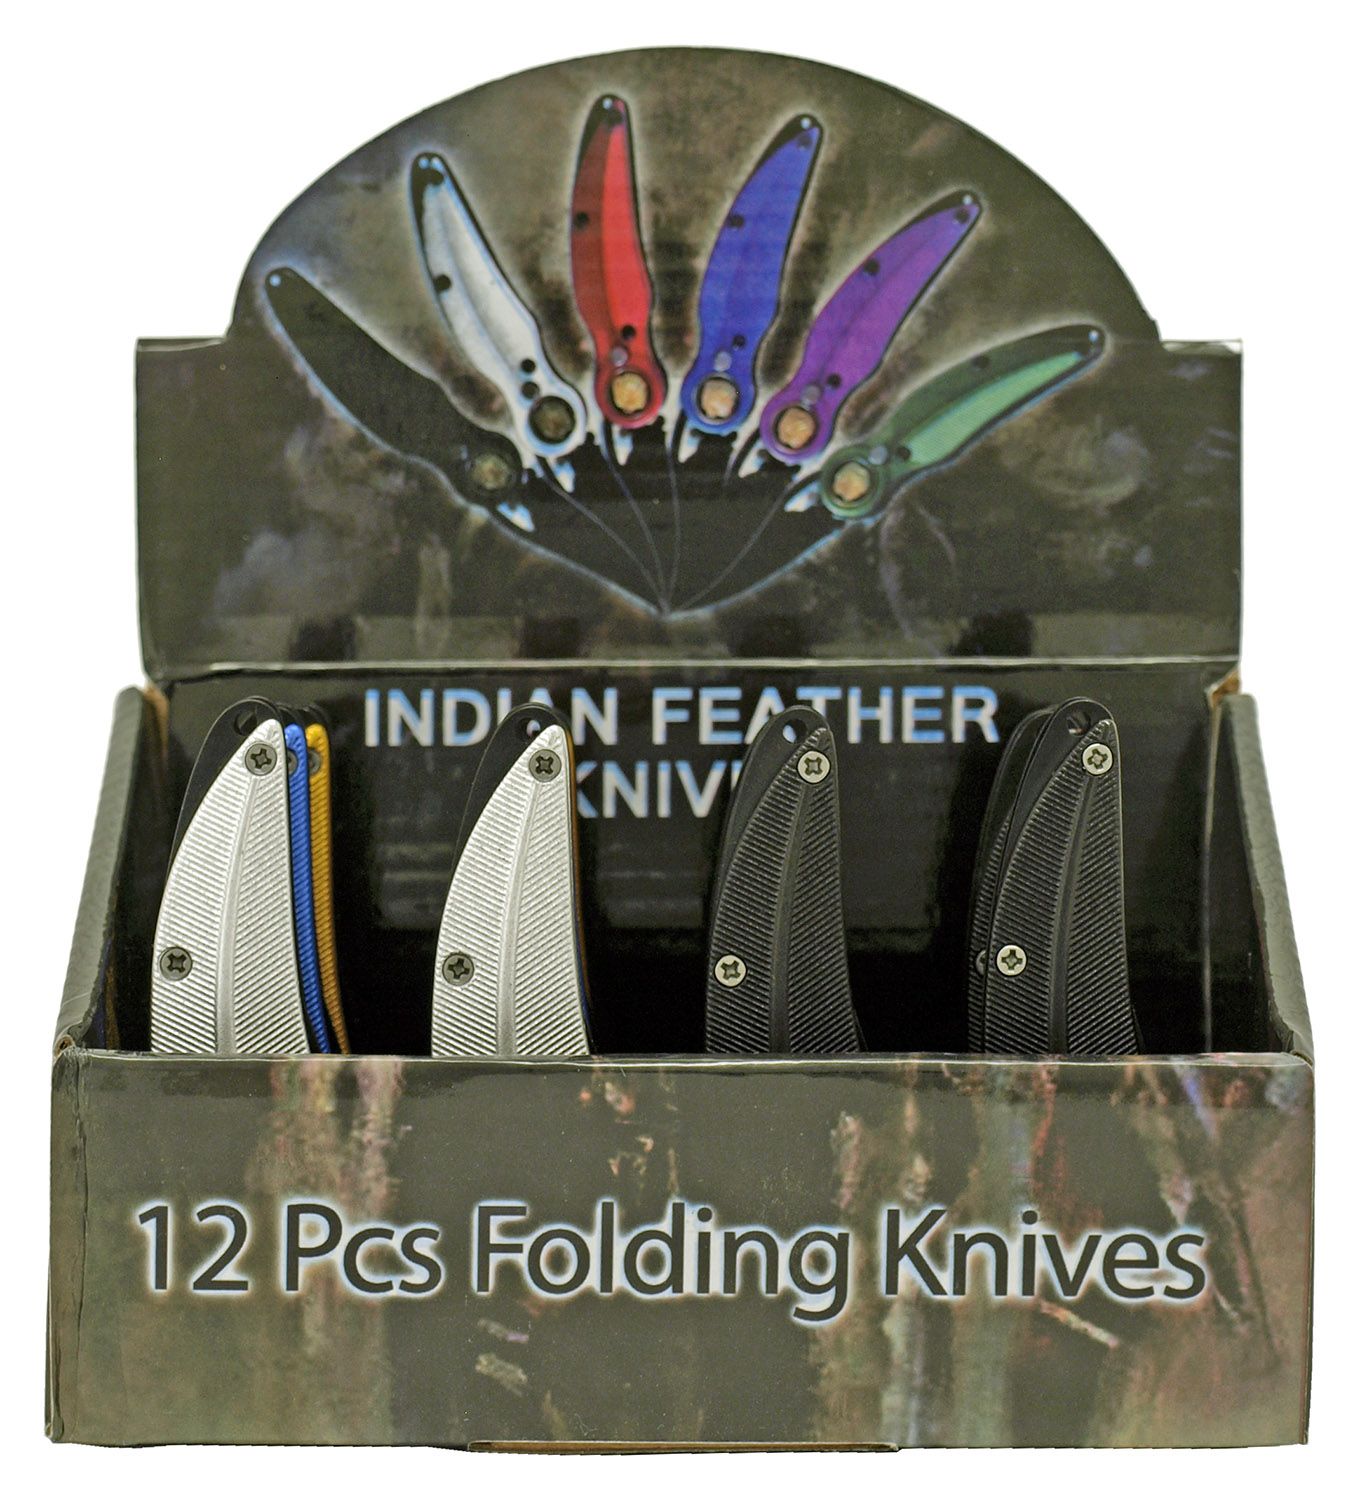 12 - pc. Indian Feather Switchblade Knife Set - Assorted Colors